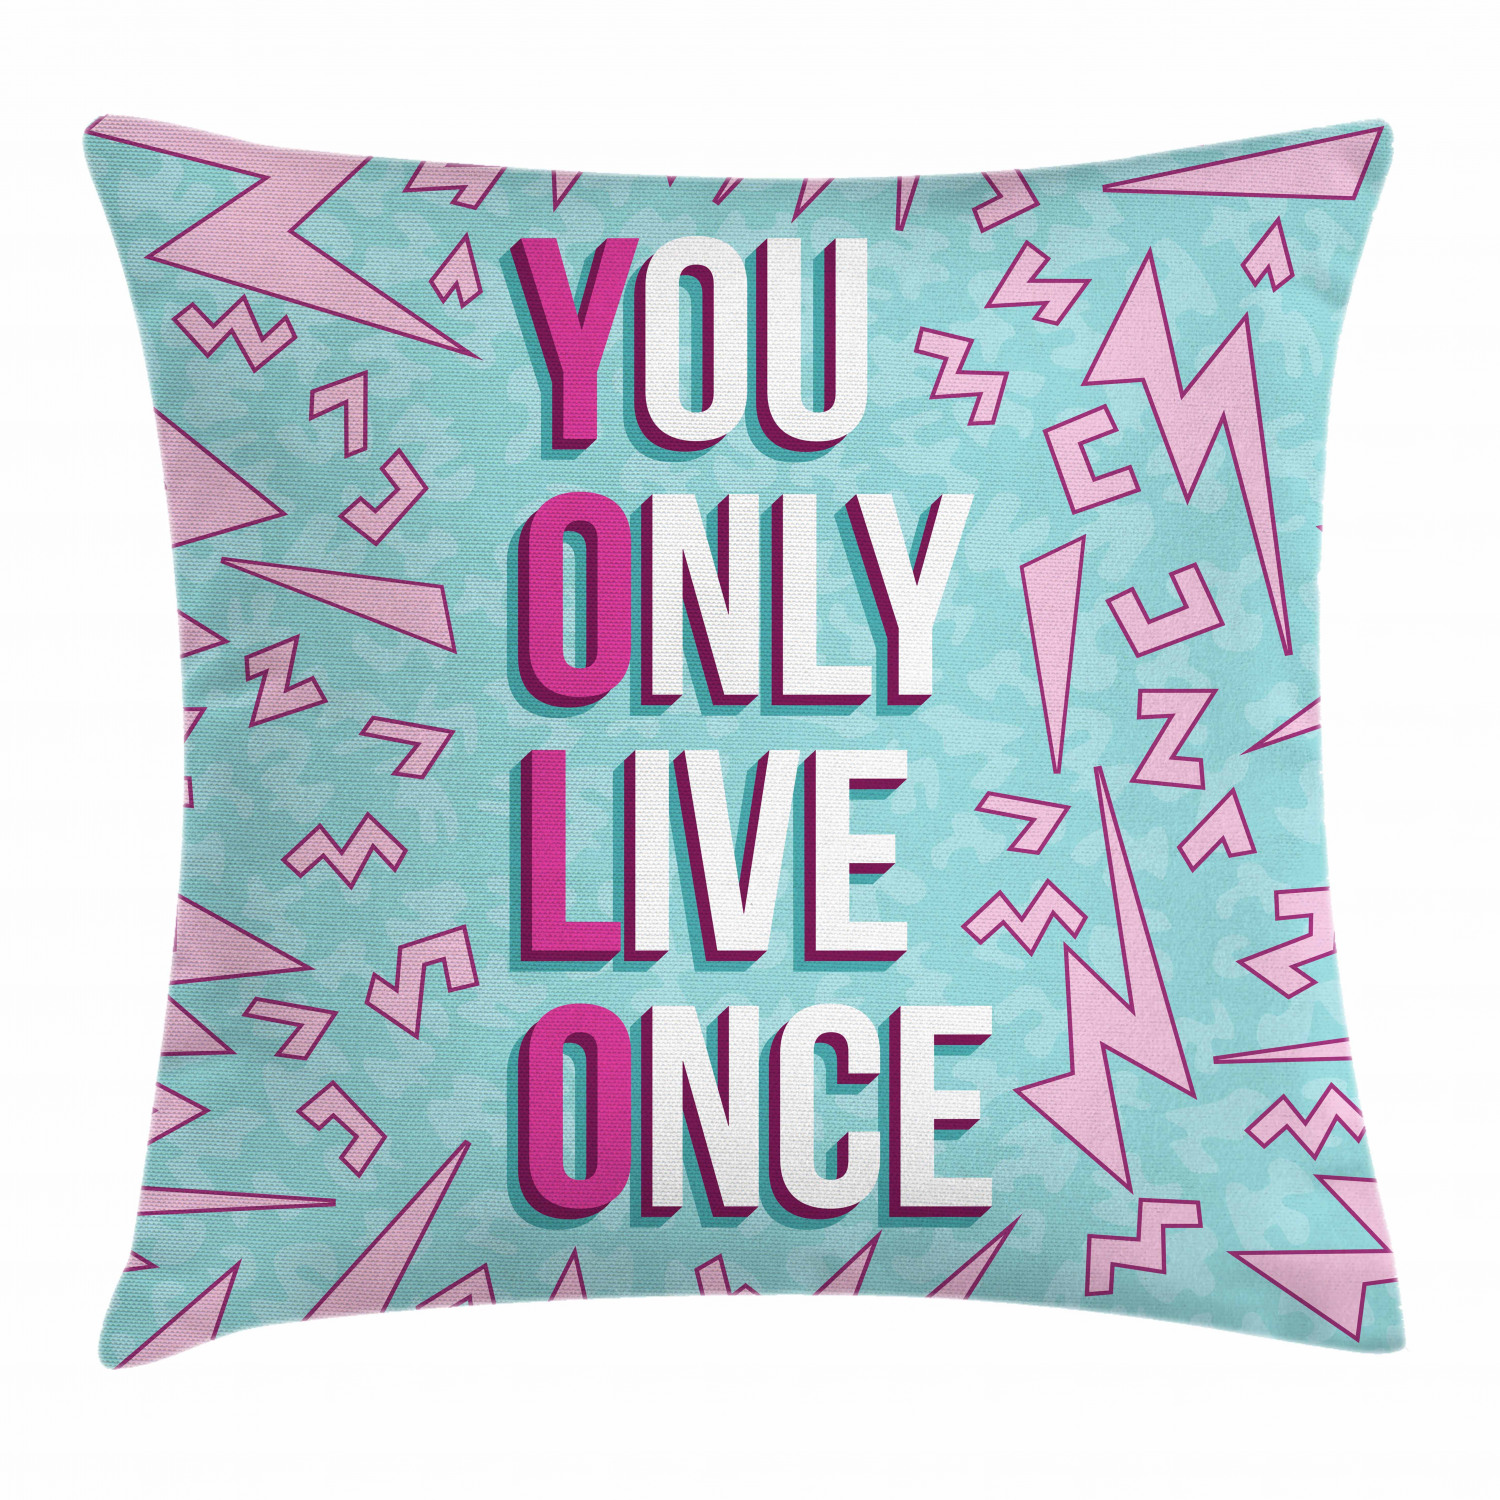 Yolo Throw Pillow Cushion Cover Abstract Shapes In Pastel Colors With Motivational Quote On Freedom Decorative Square Accent Pillow Case 18 X 18 Inches Pale Pink Purple Pale Blue By Ambesonne